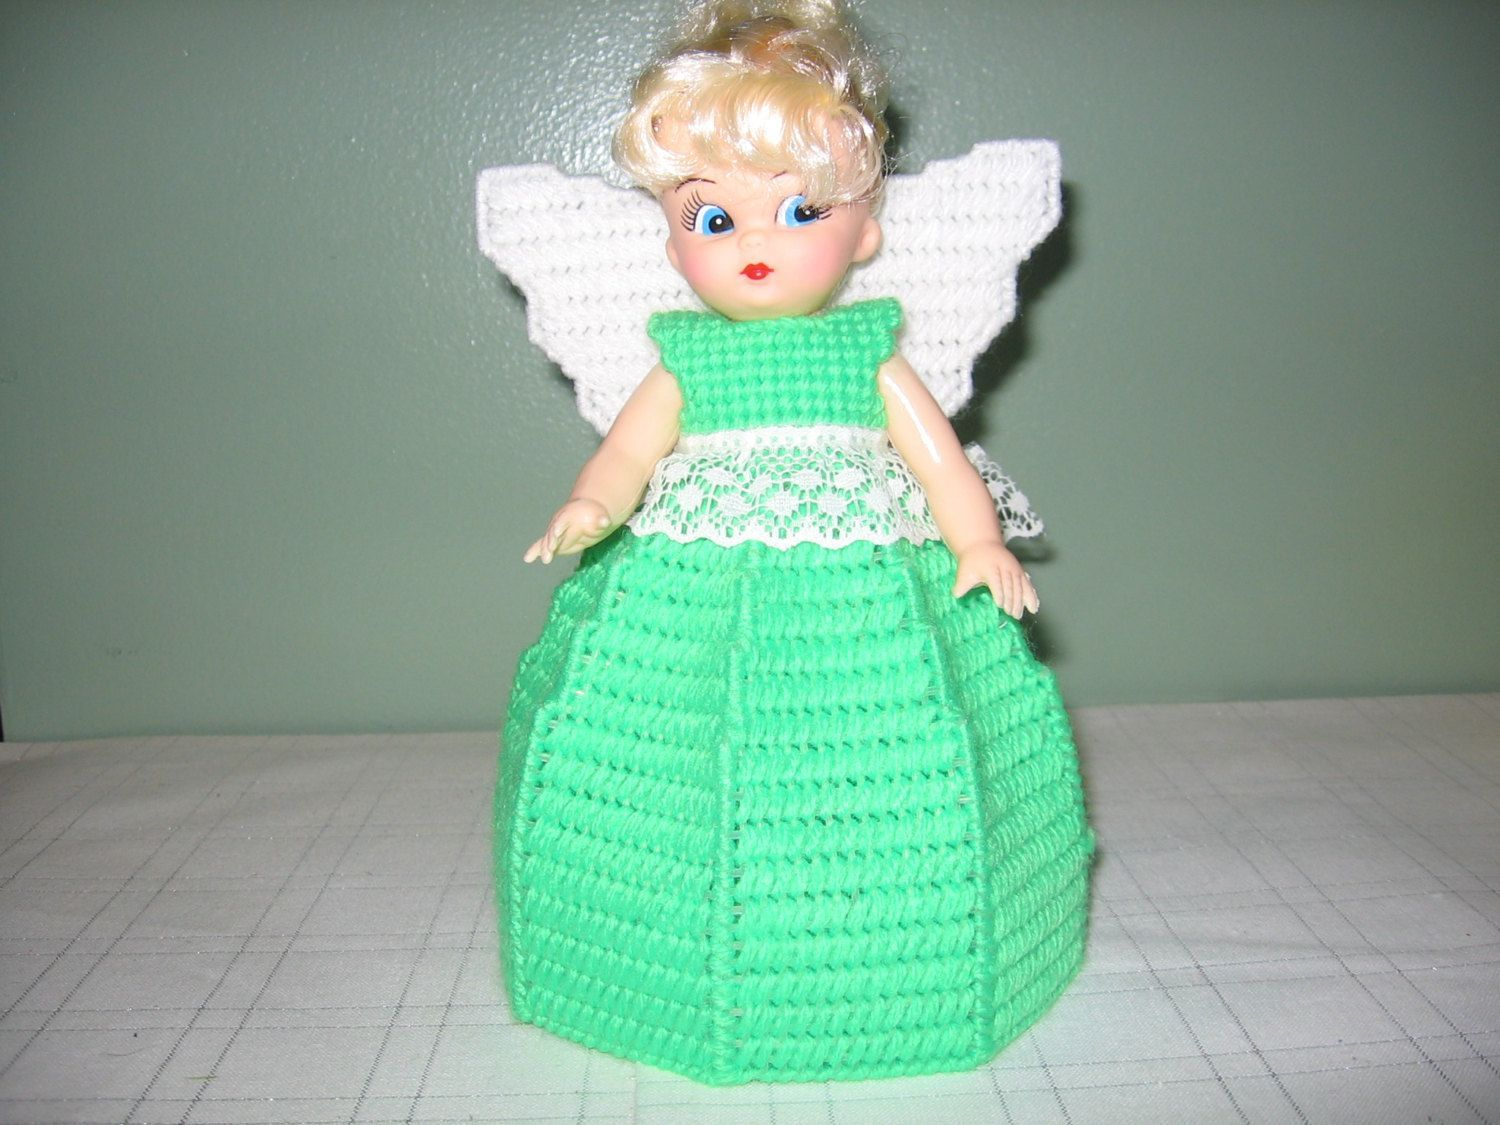 Light Green Angel Air Freshner or Angel Tree Topper Collectible Doll by CreationsbyAMJ on Etsy #airfreshnerdolls Light Green Angel Air Freshner or Angel Tree Topper Collectible Doll by CreationsbyAMJ on Etsy #airfreshnerdolls